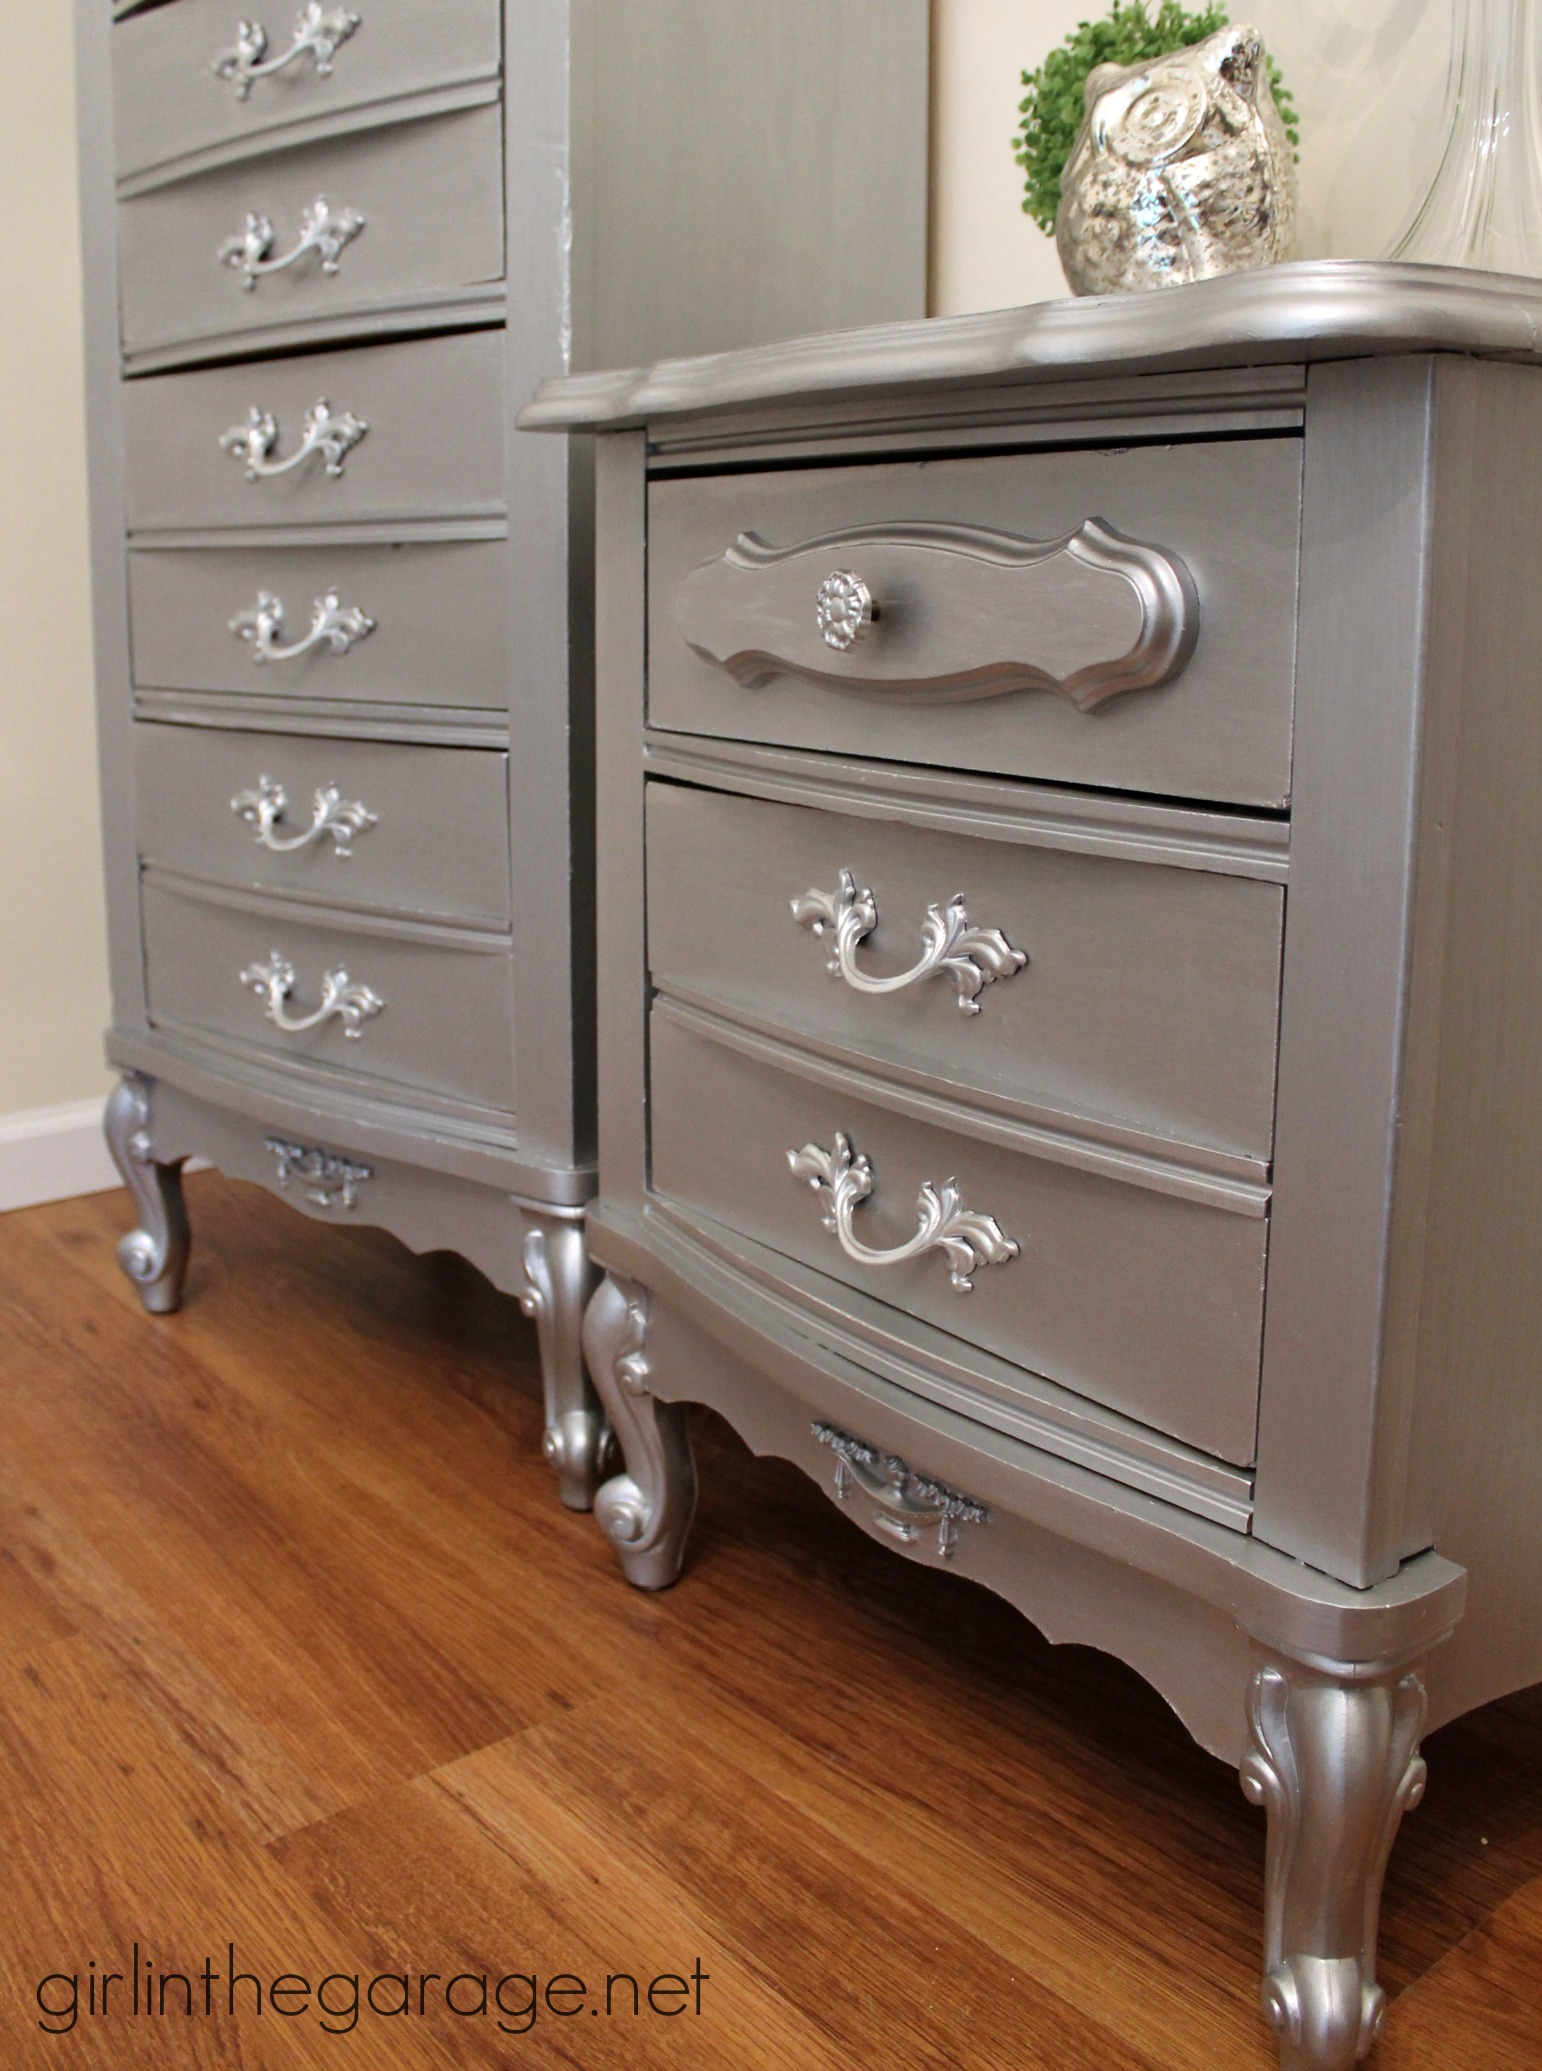 Top 10 popular diy projects and posts of 2014 girl in the garage Paint wood furniture